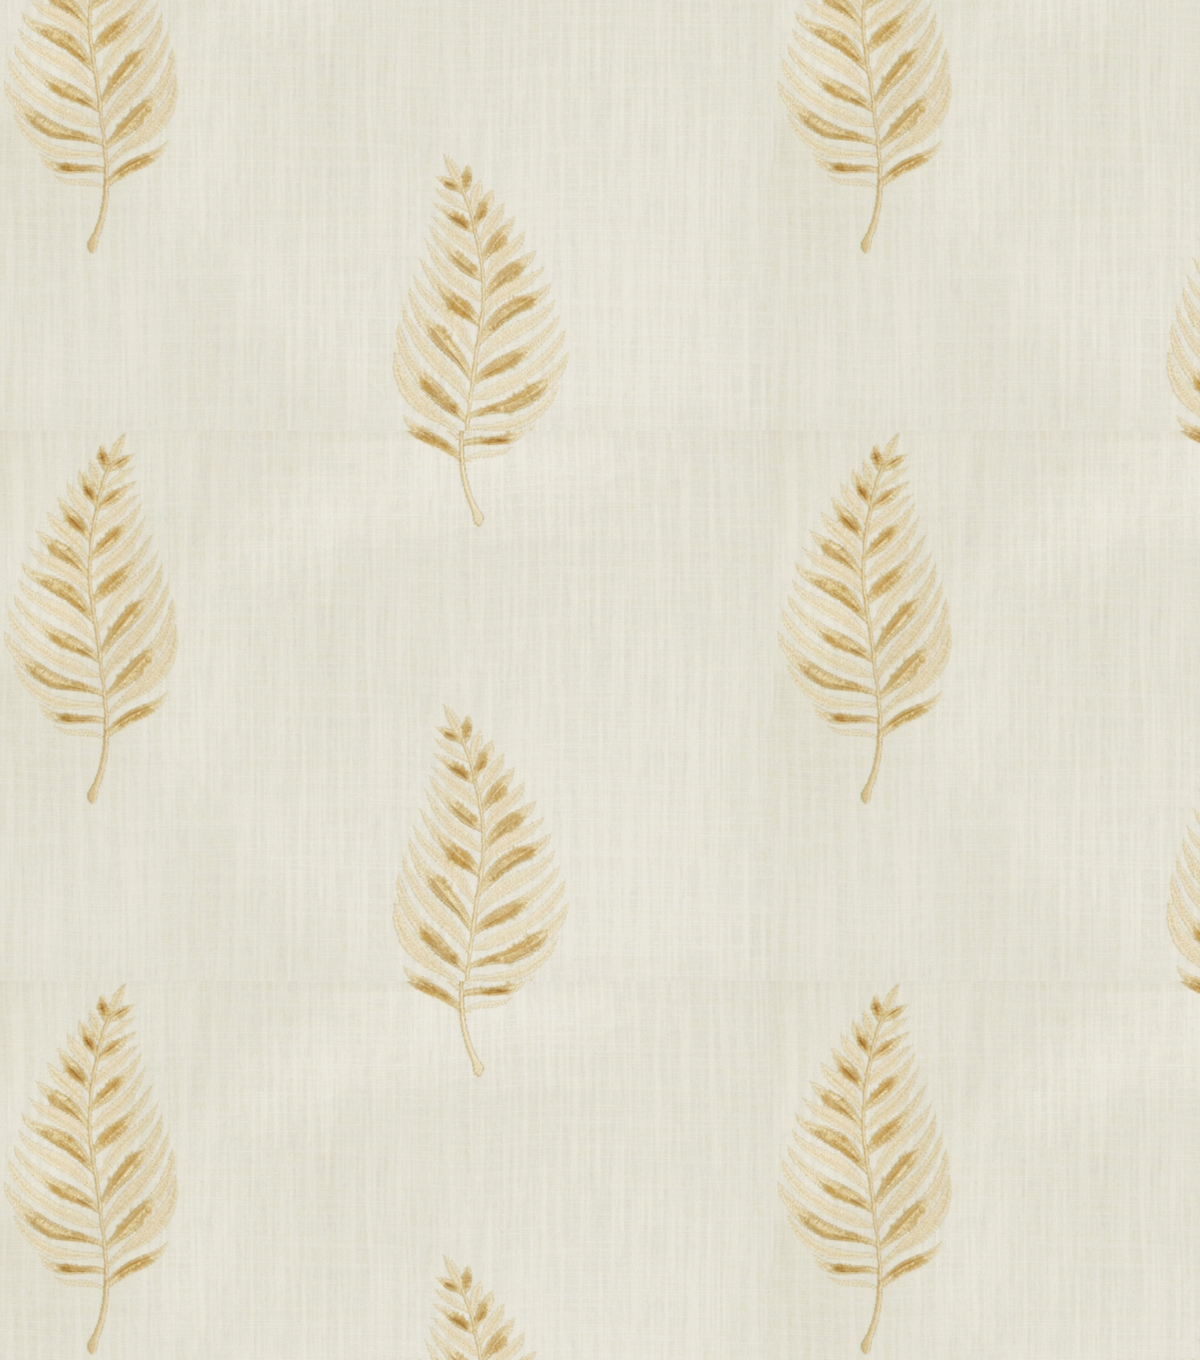 Home Decor 8x8 Fabric Swatch-Eaton Square Research Champagne